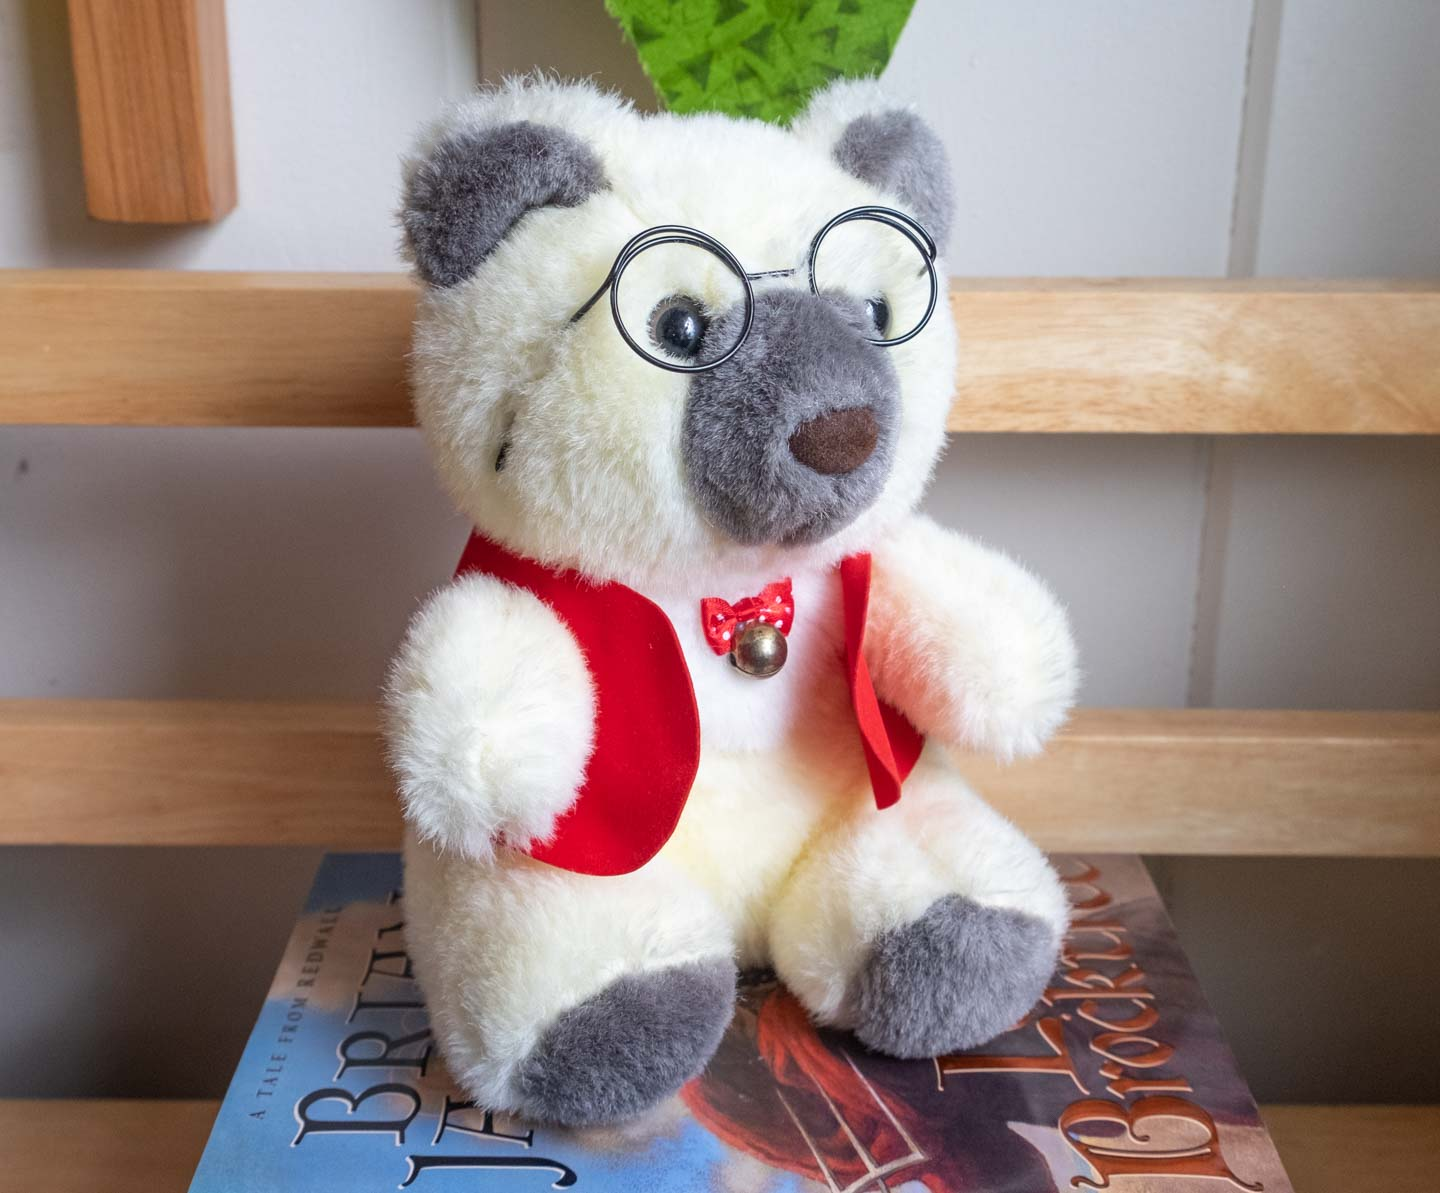 Cream and gray stuffed teddy bear wearing a red vest and wire glasses